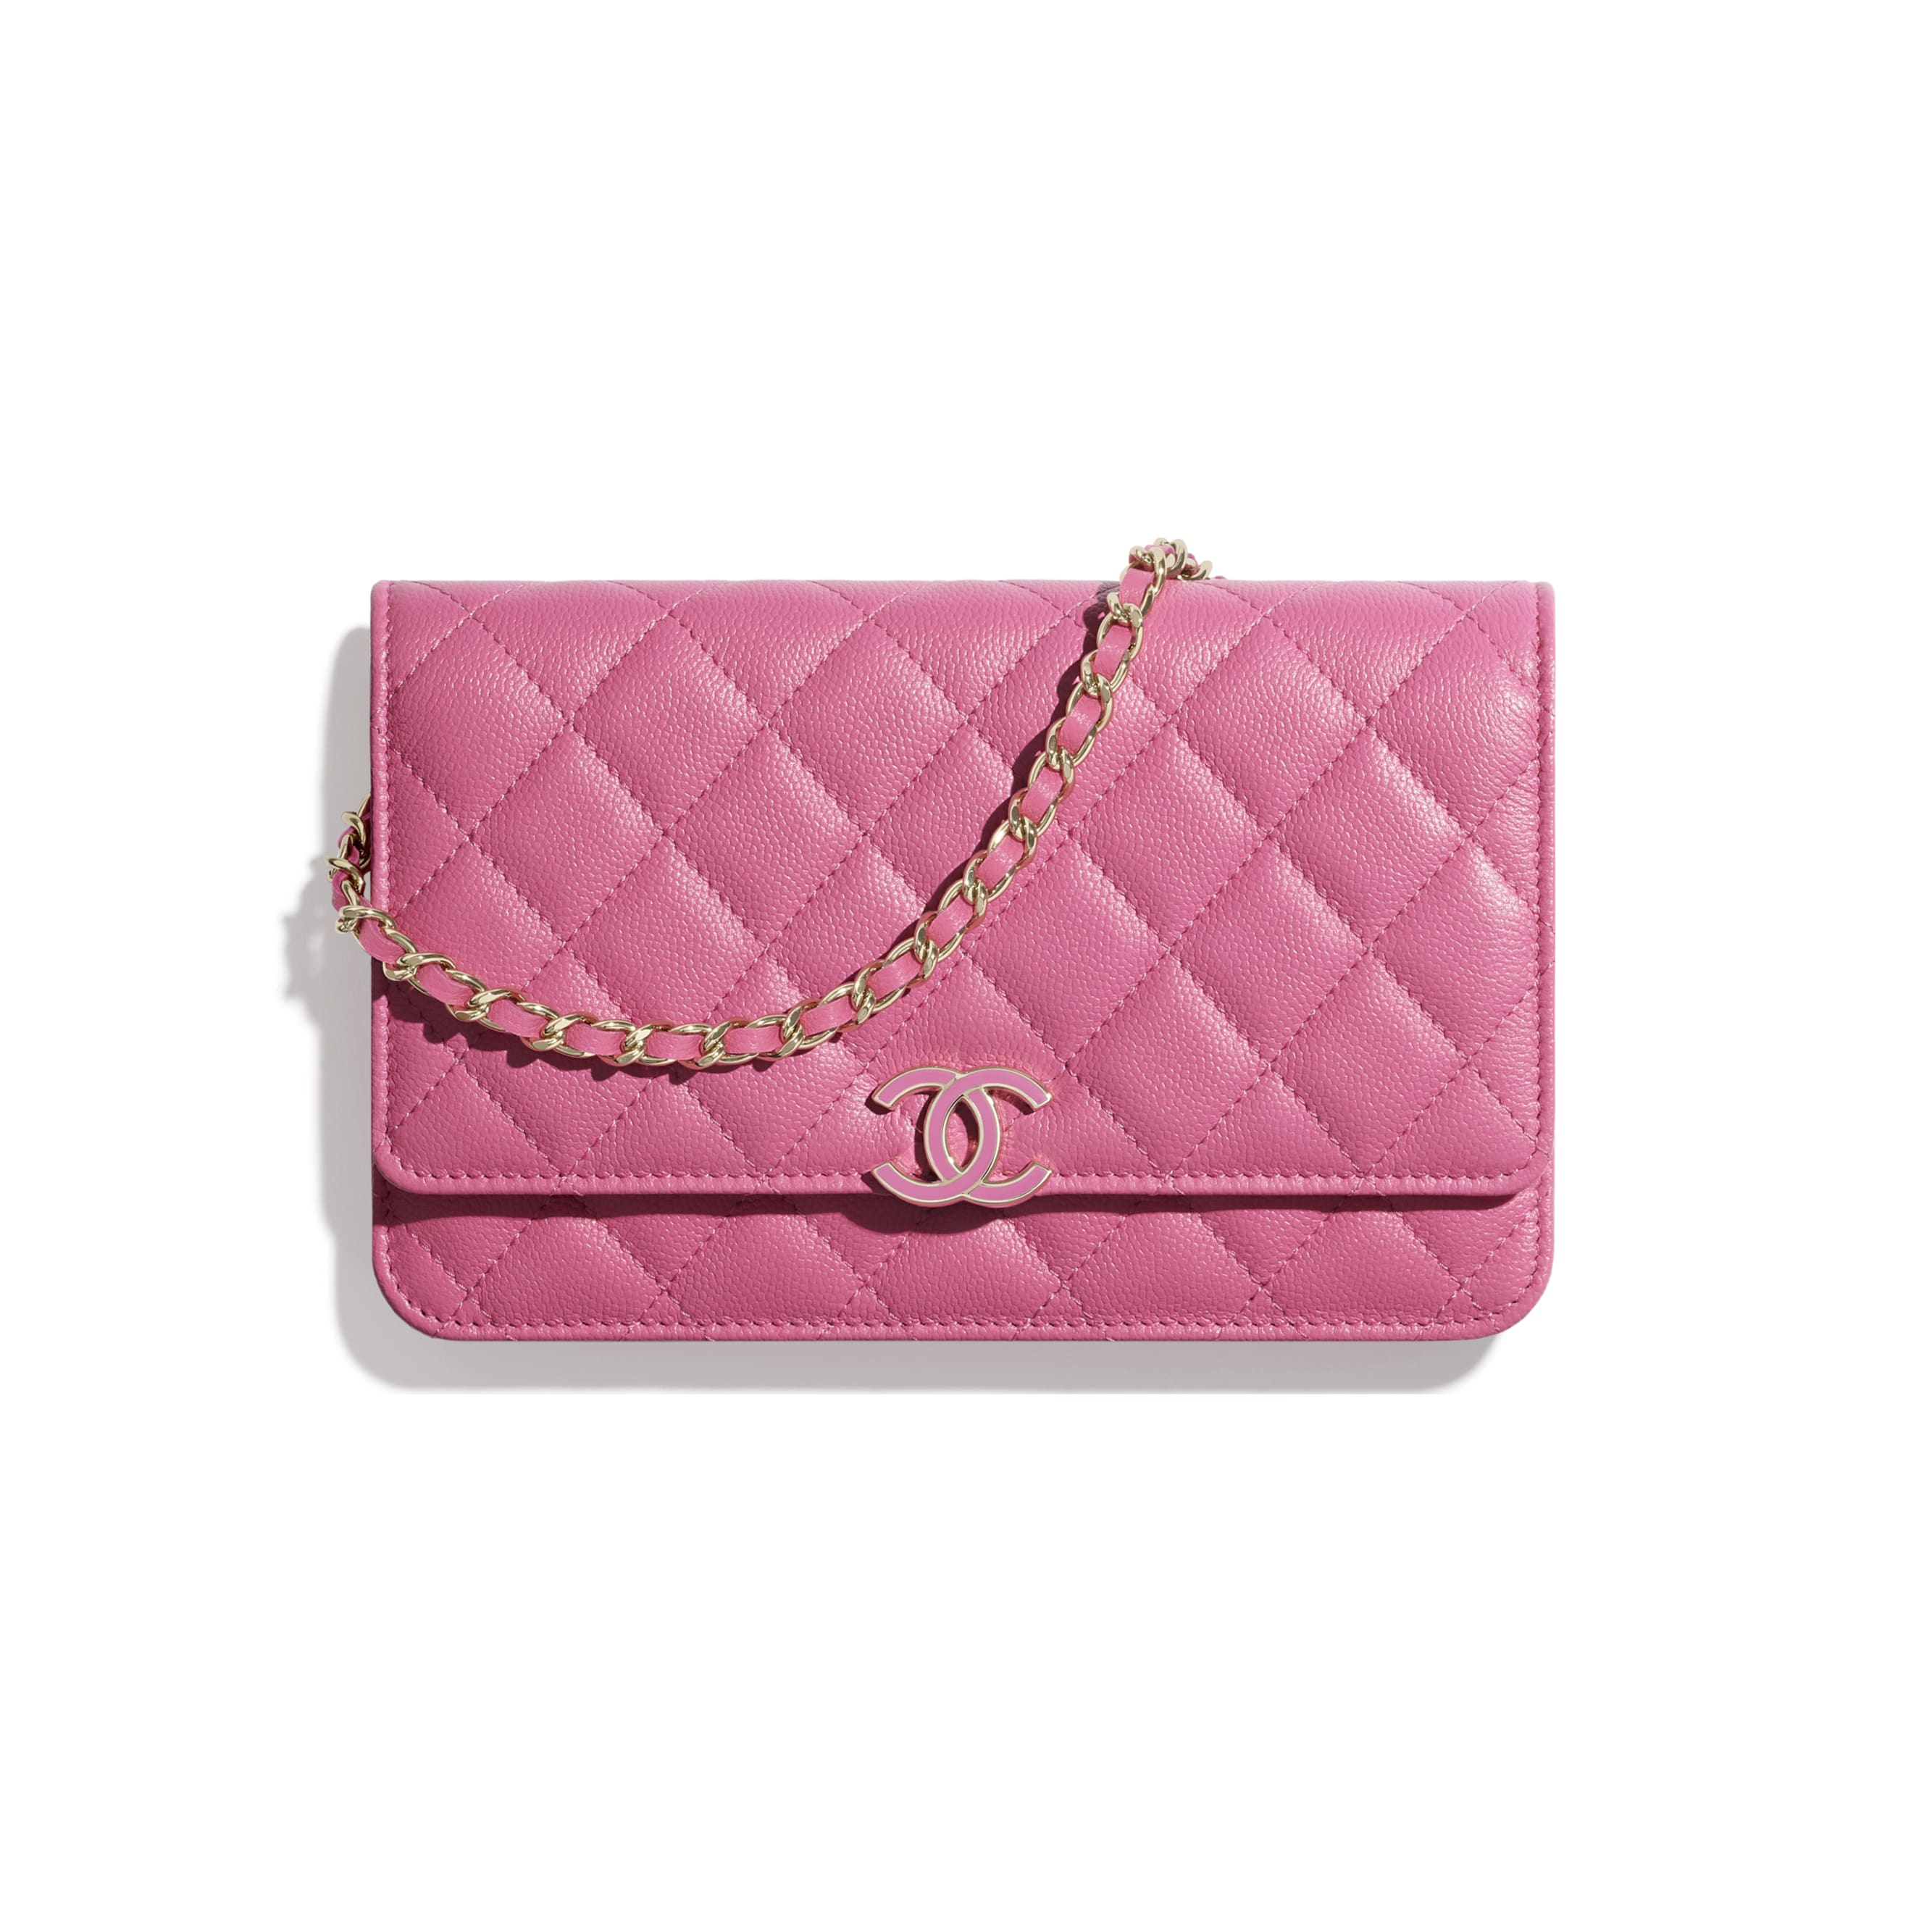 Wallet On Chain - Pink - Shiny Grained Calfskin, Gold-Tone & Lacquered Metal  - CHANEL - Default view - see standard sized version